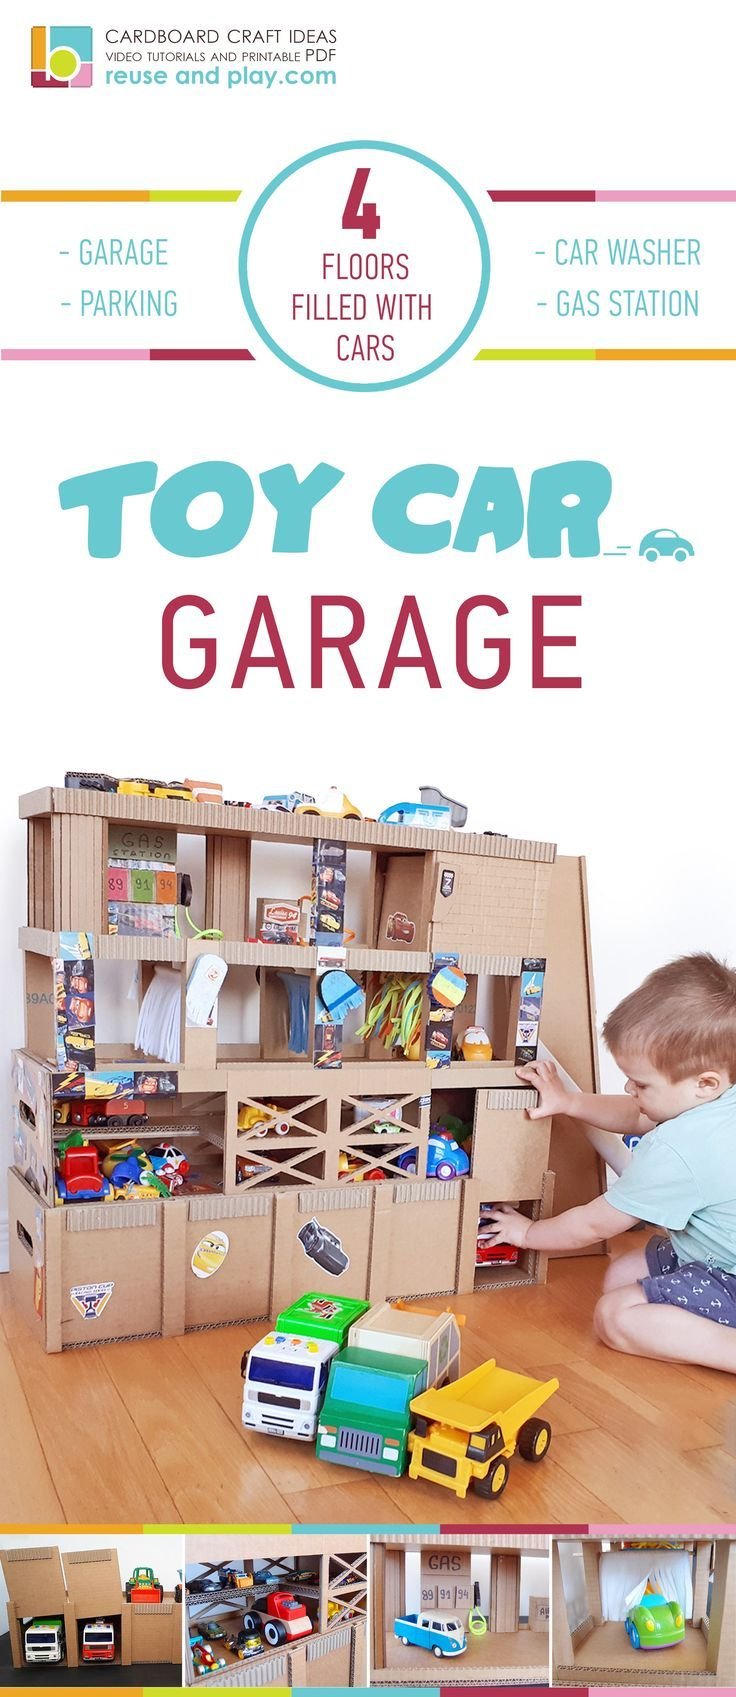 Toys car for child  Toy Car Garage Cardboard Storage Printable PDF Pattern DIY Tutorial